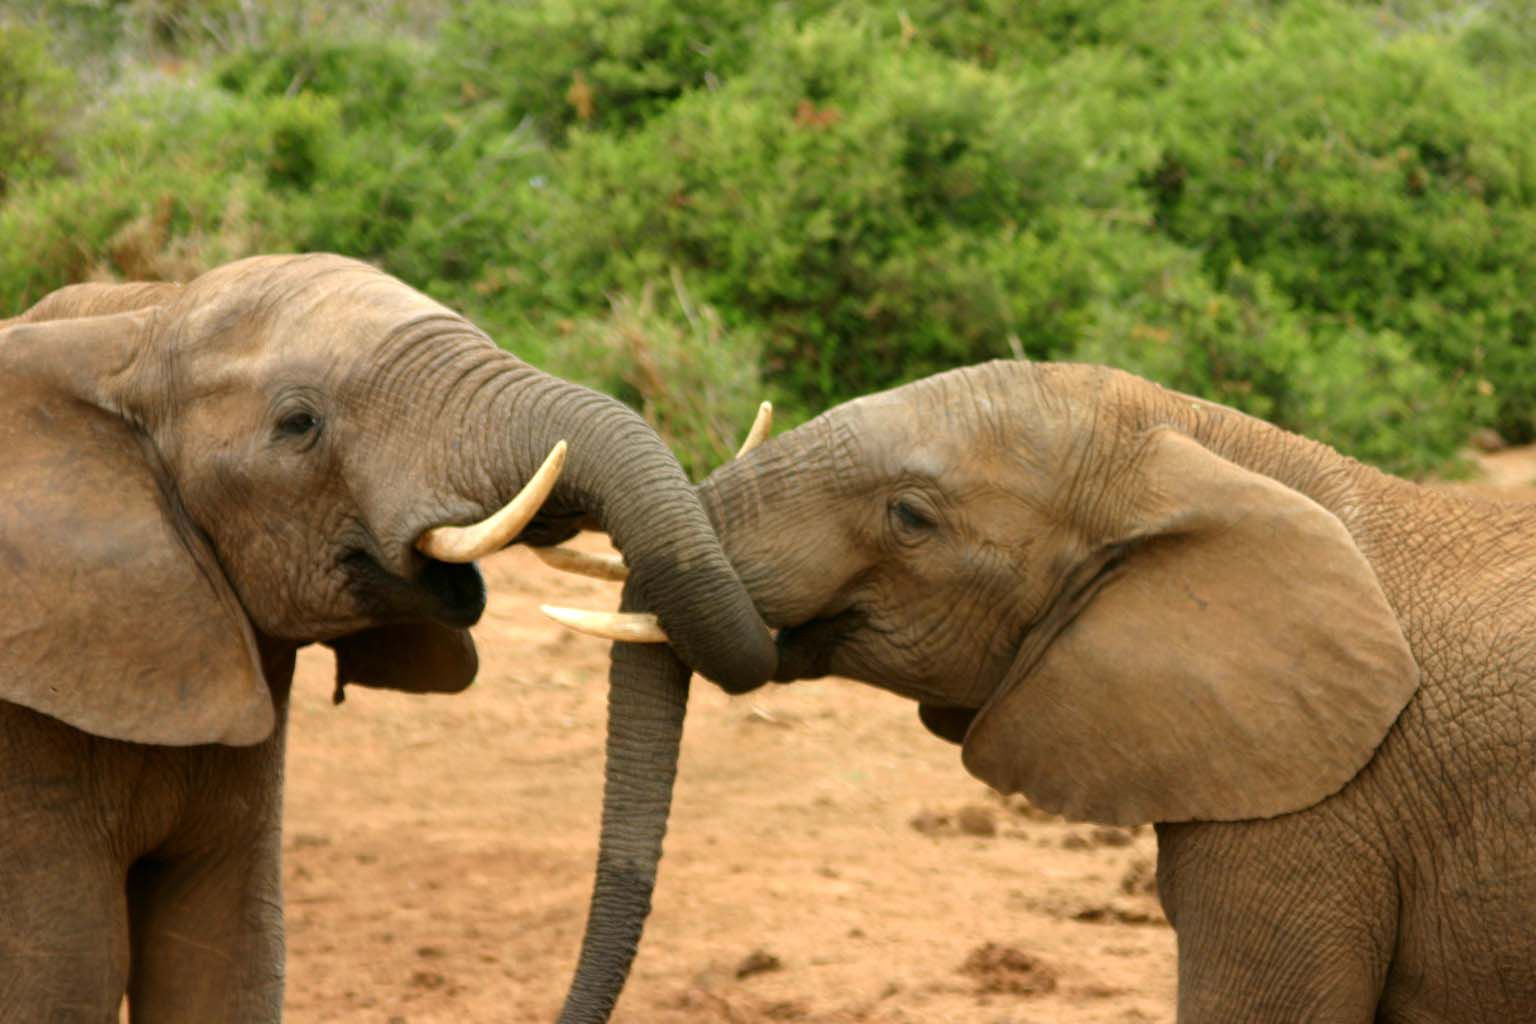 Two elephants winding their trunks together in a mating ritual.